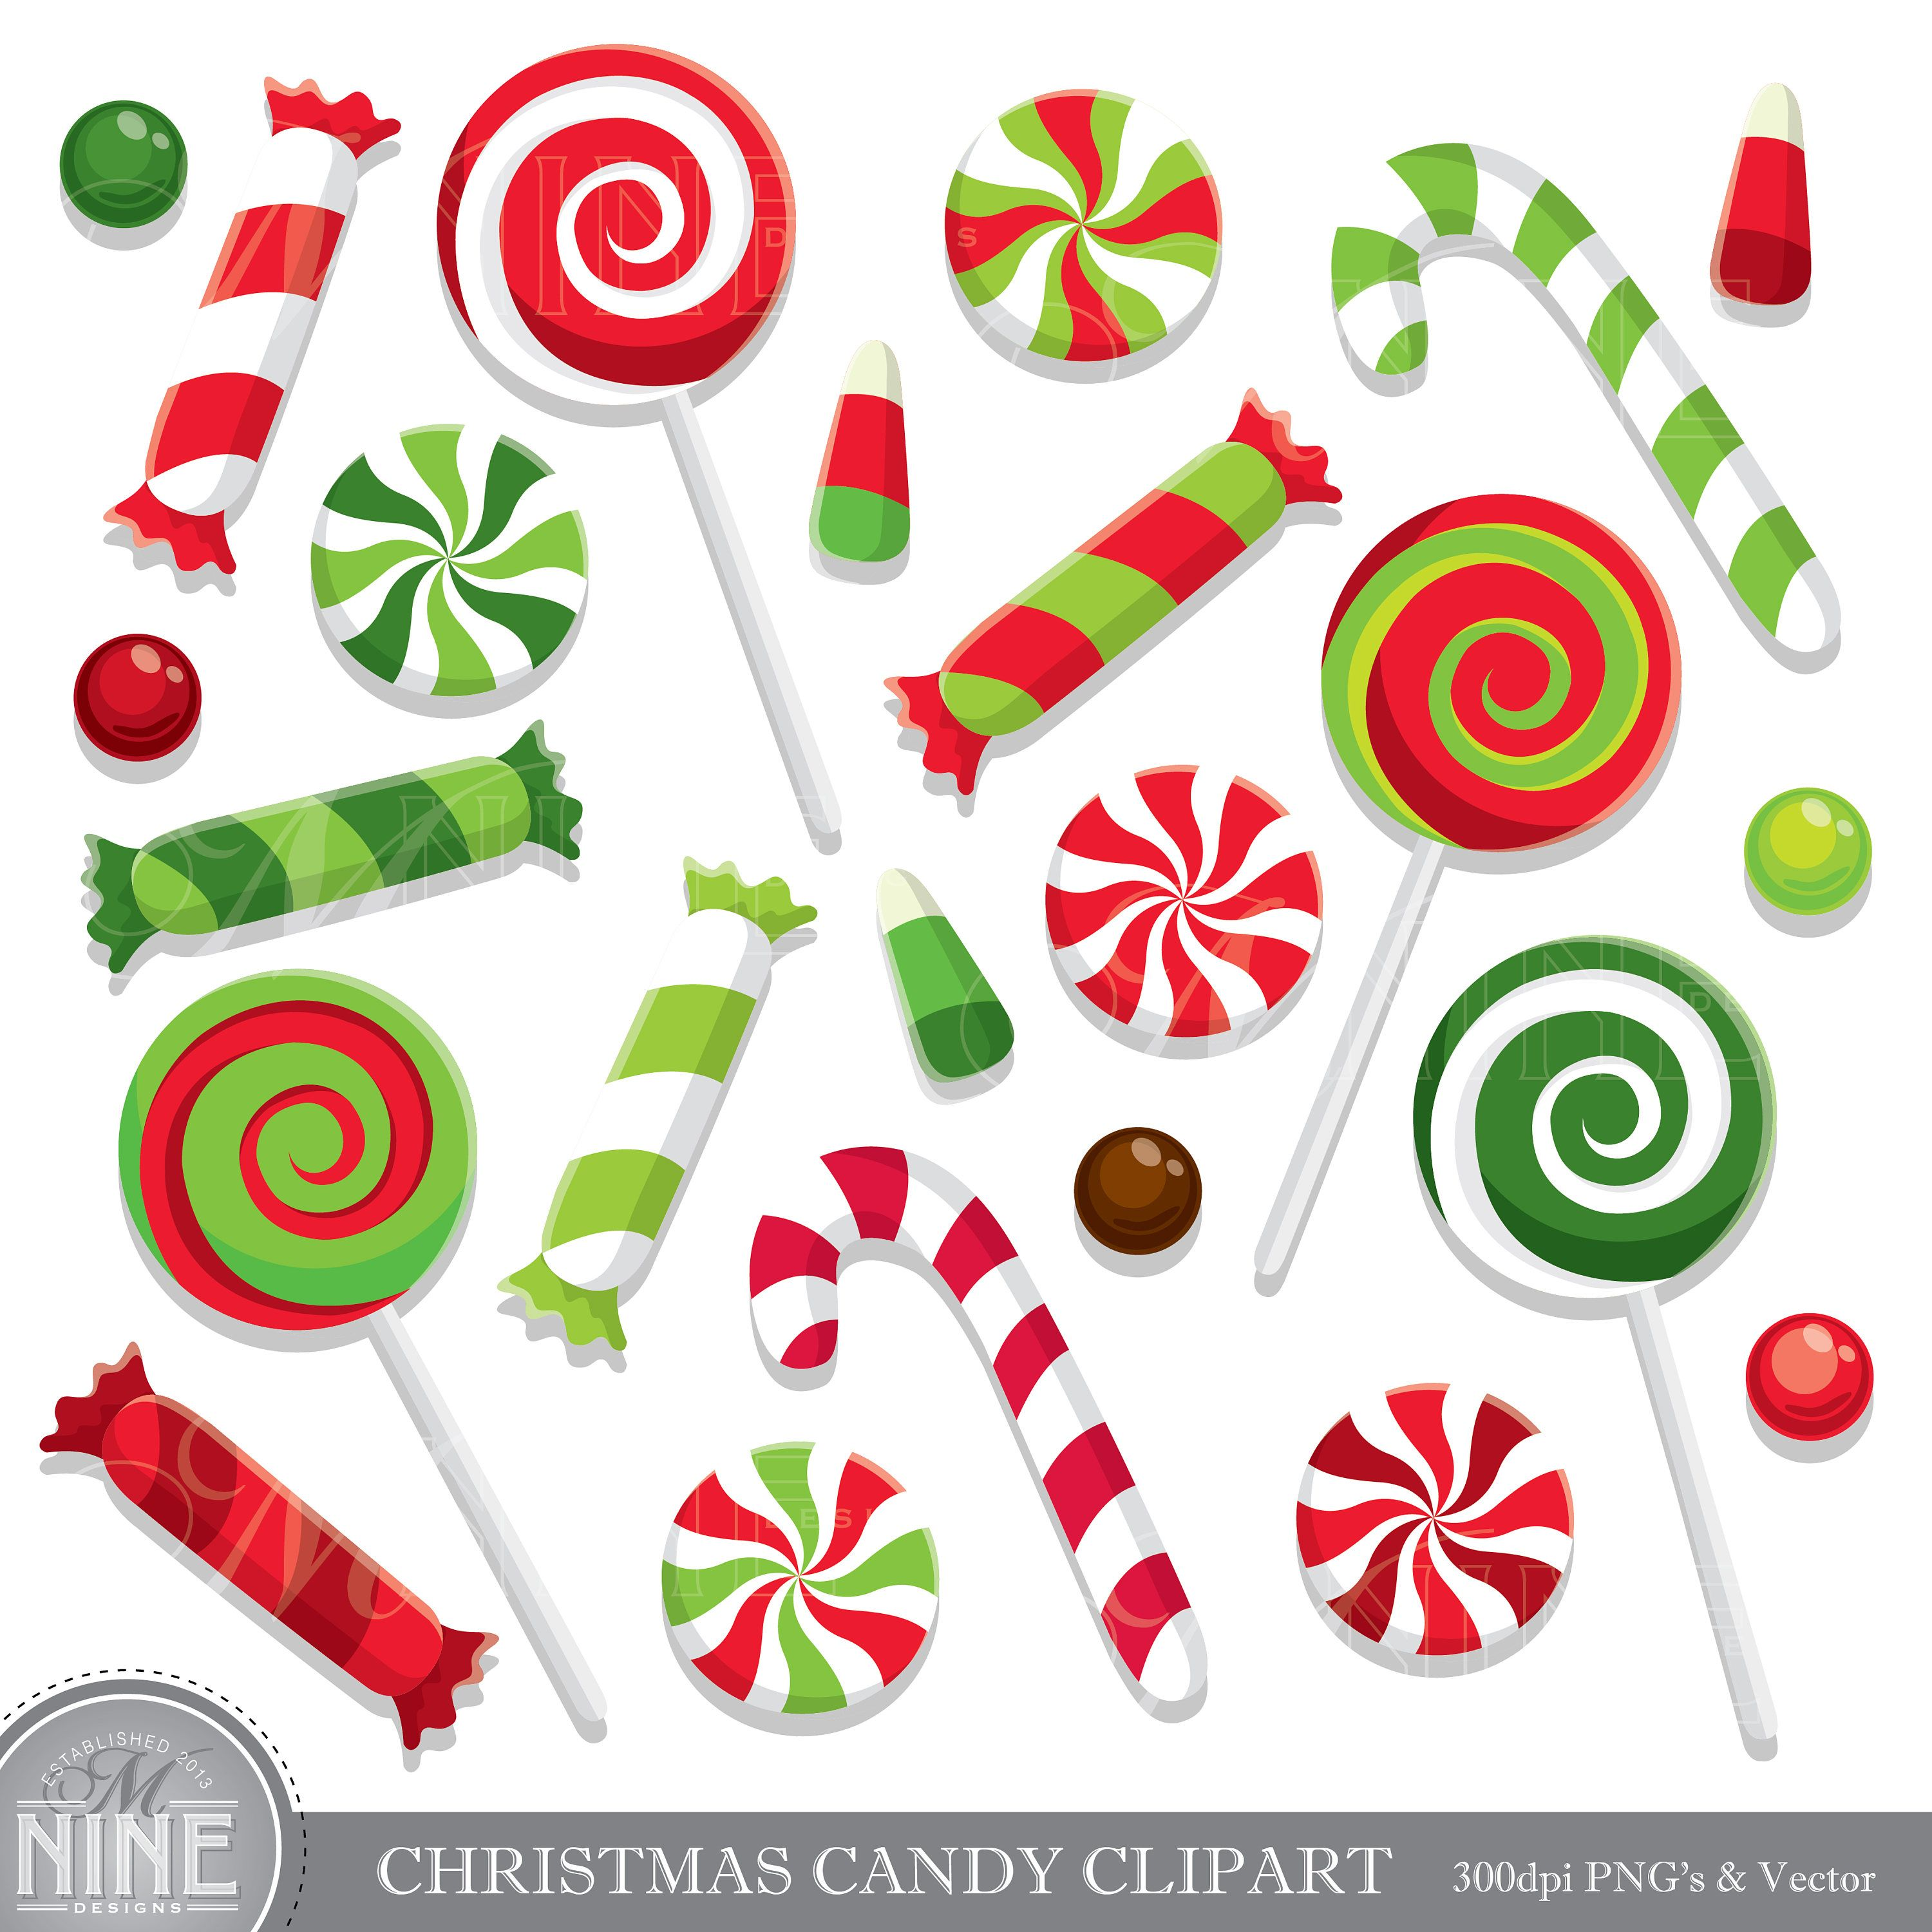 CHRISTMAS CANDY Clip Art / Holiday CANDY Clipart Downloads